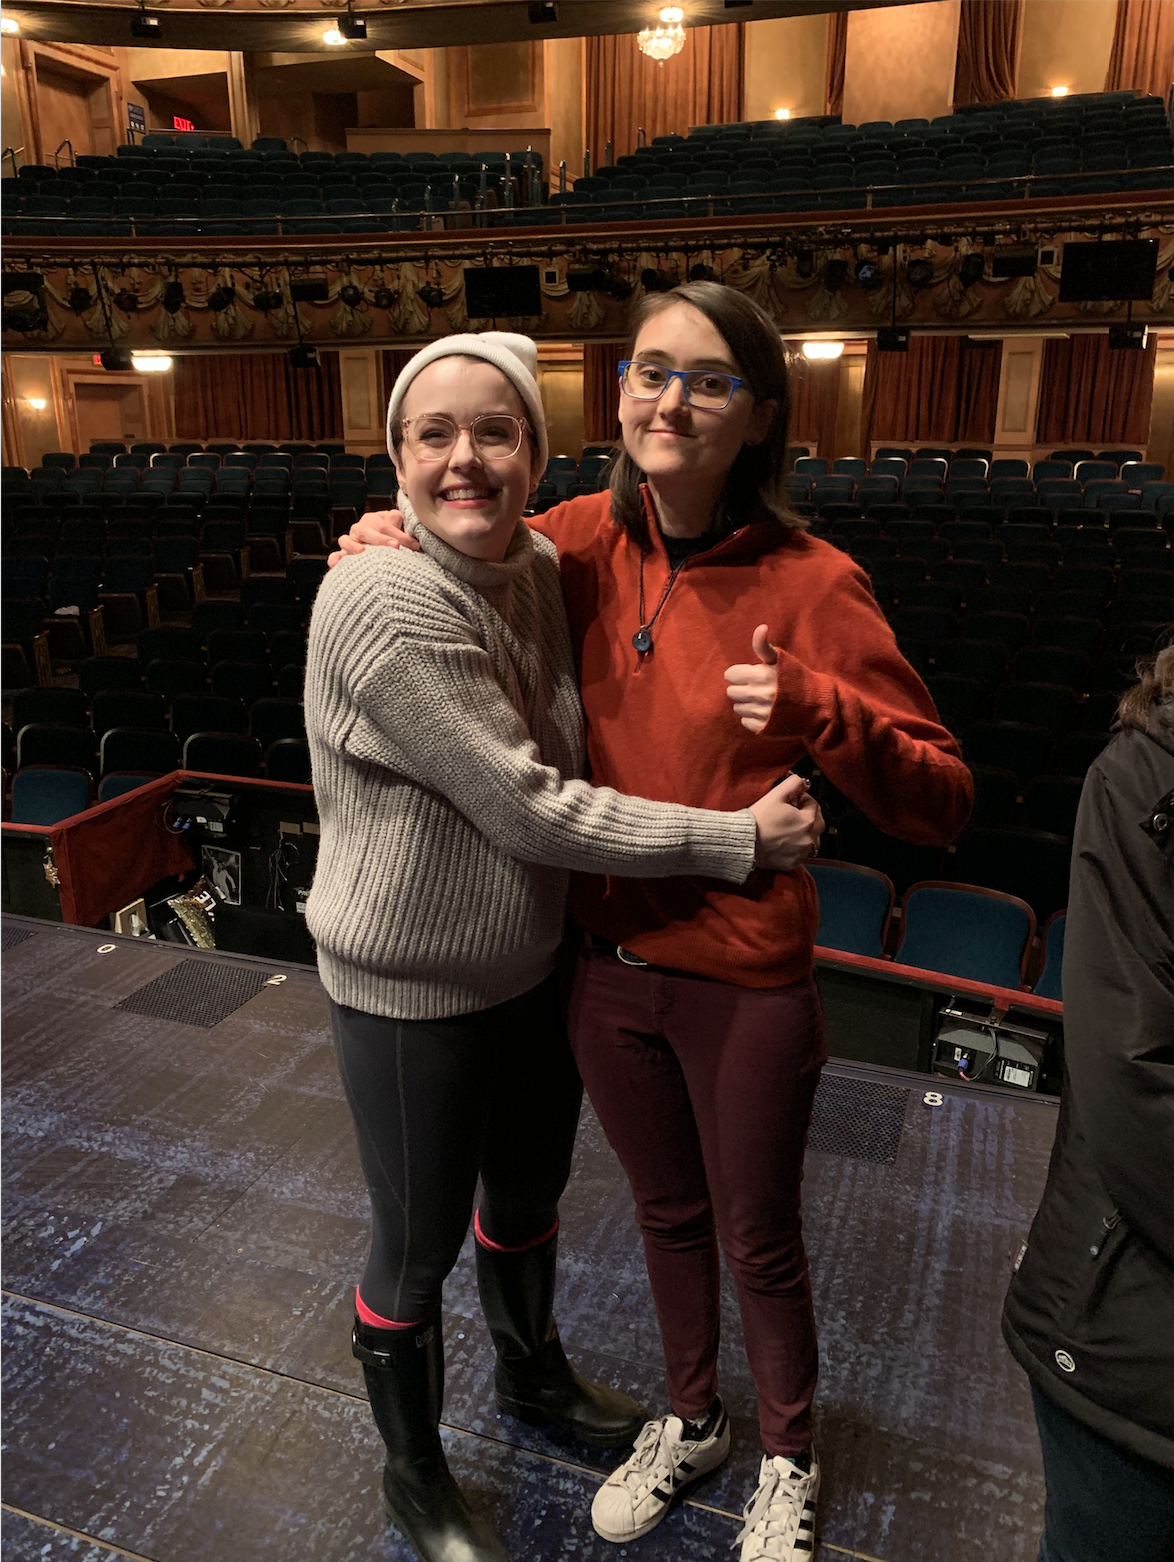 Broadway debut with Caitlin Kinnunen